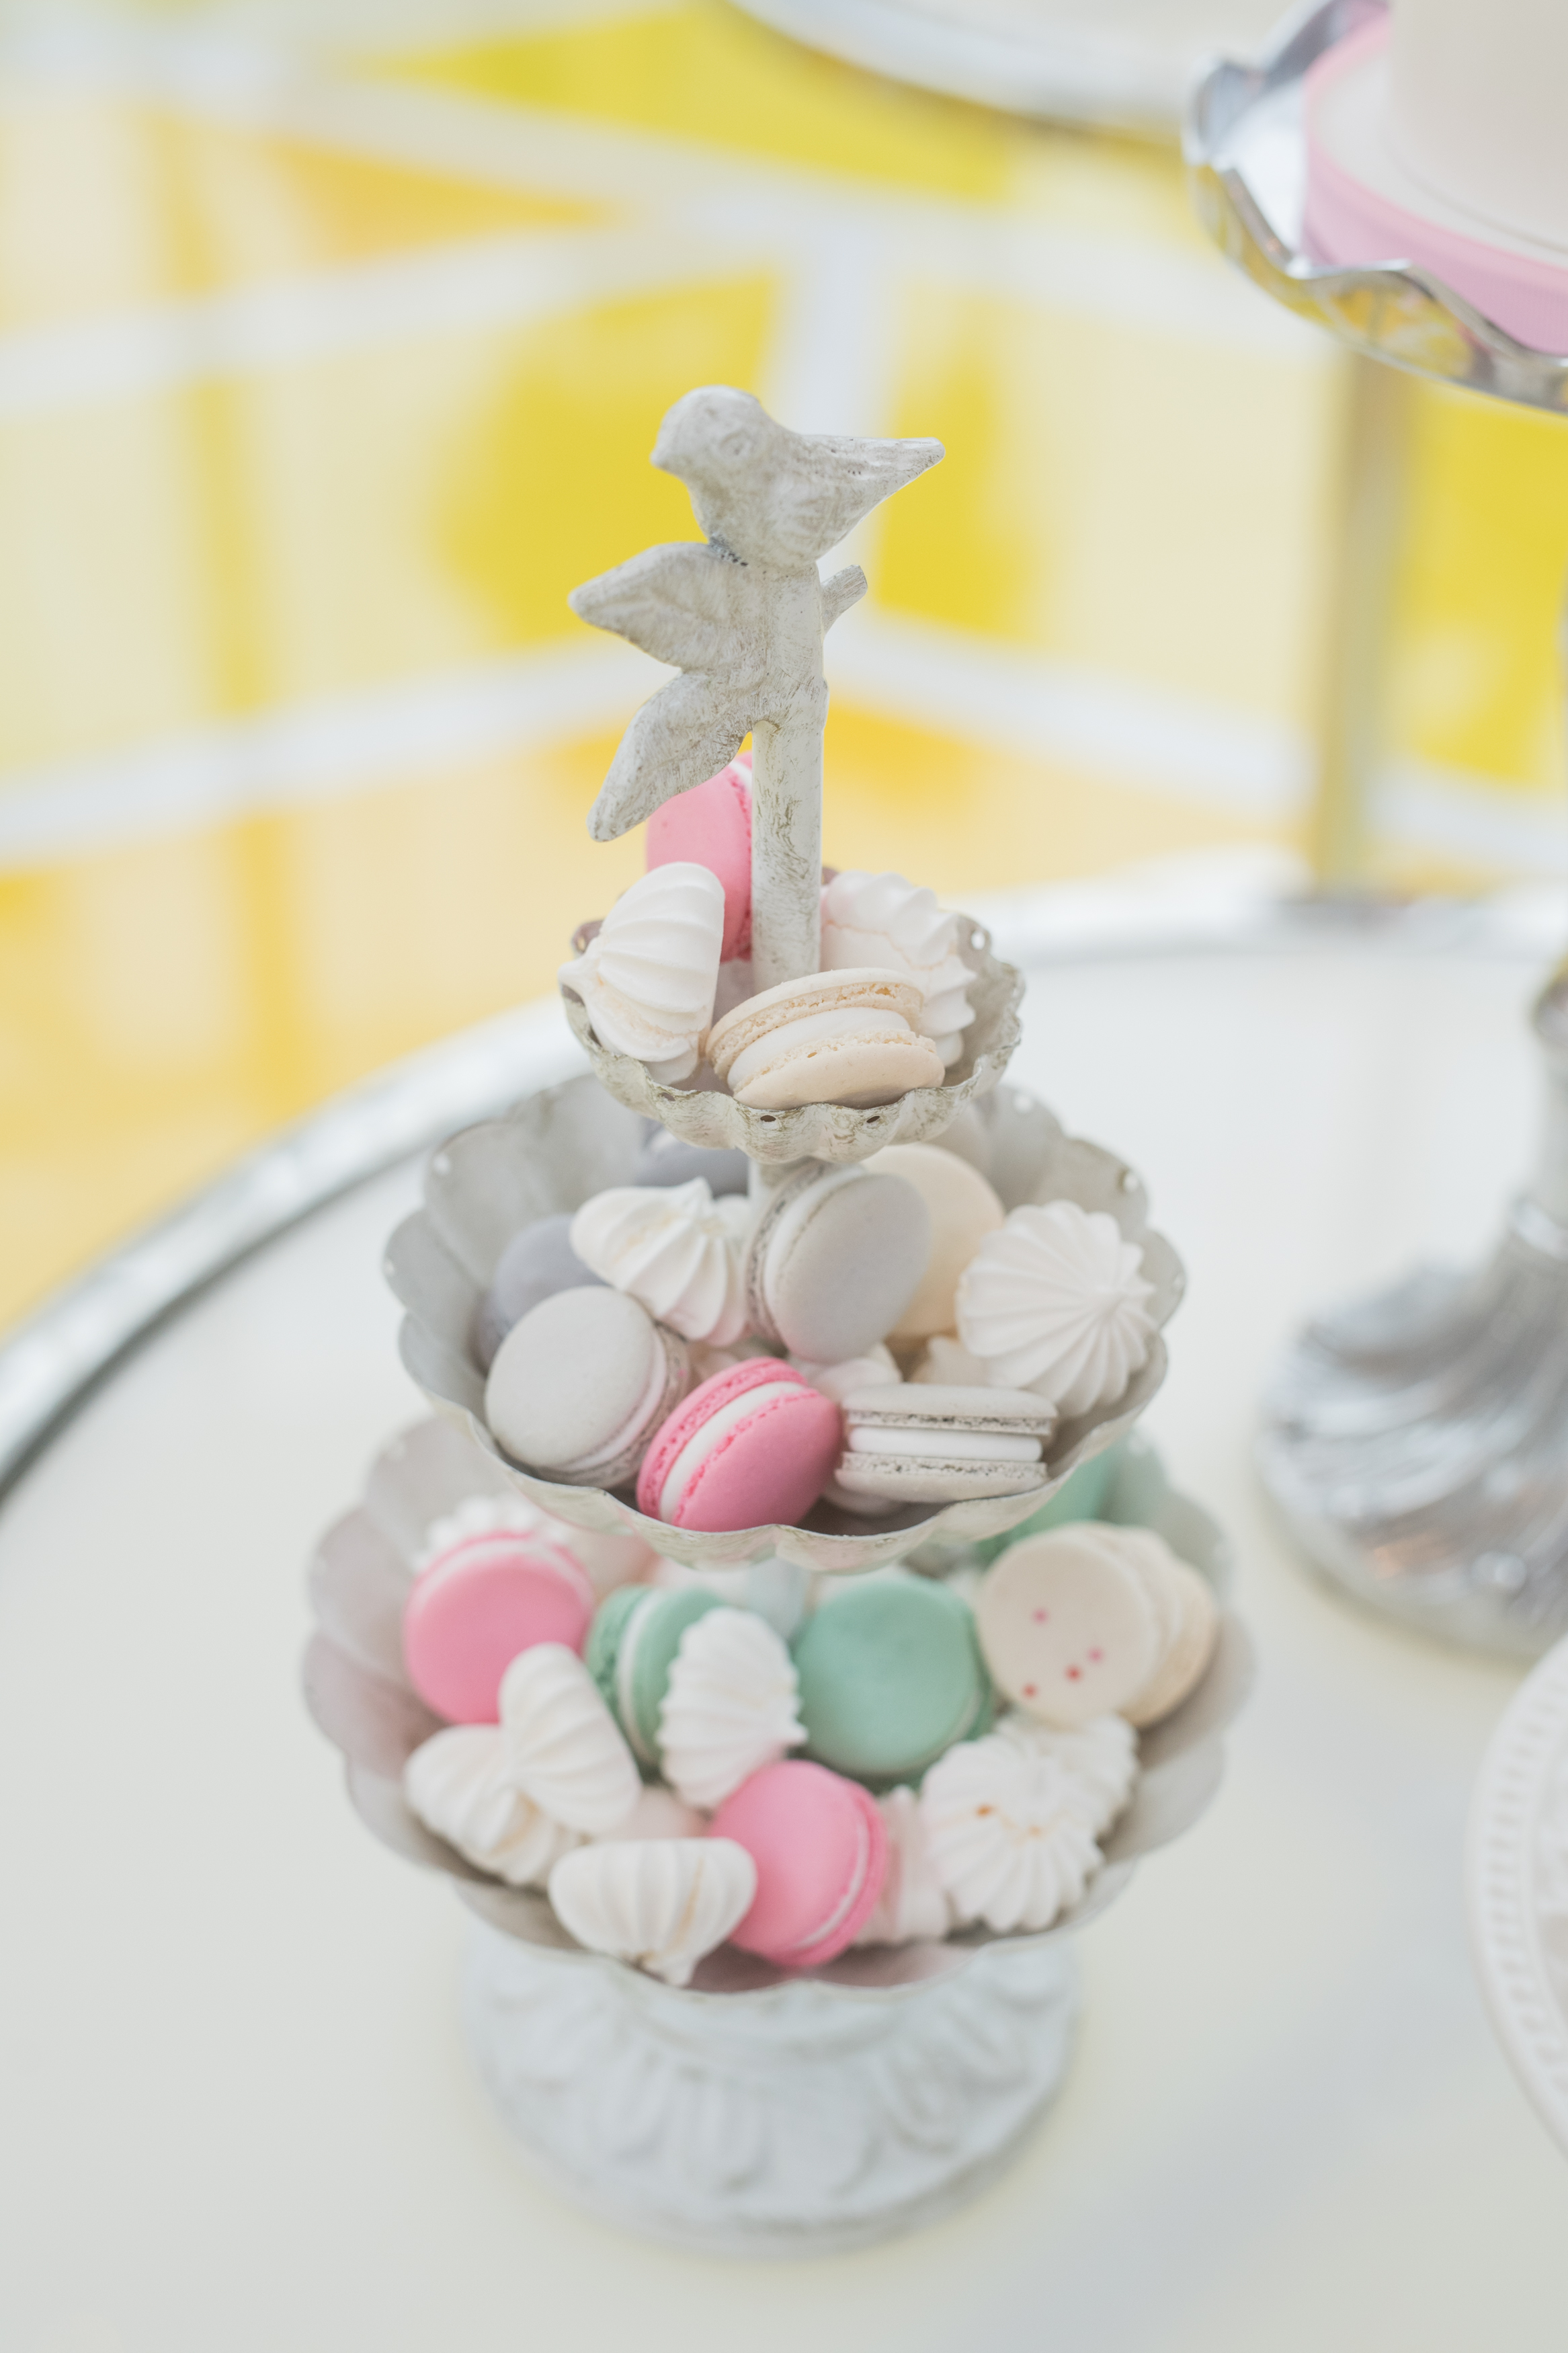 August In Bloom - Macaron tray - #SQ1Bridal (Square One Shopping Centre)